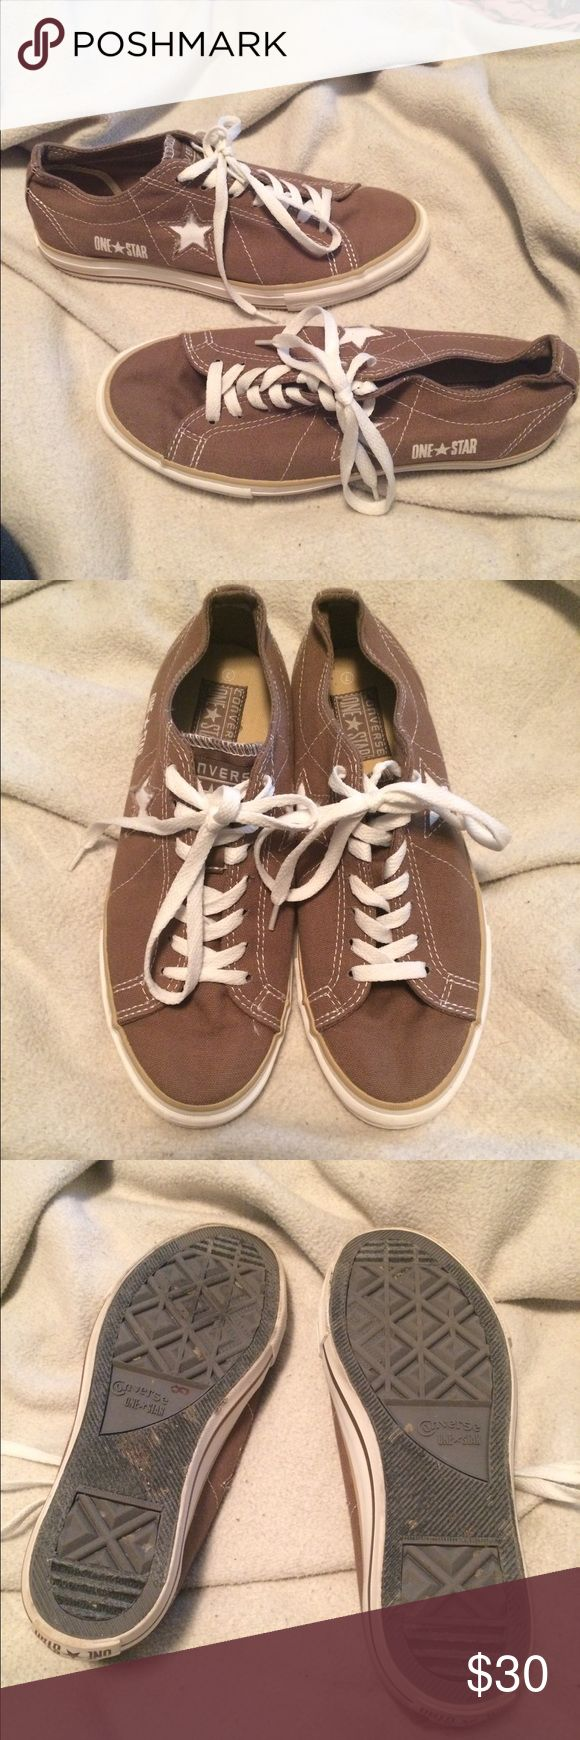 Brown Converse All-Stars size 9 Women's size 9, men's size 7. Gently used - still great shape! Converse Shoes Sneakers